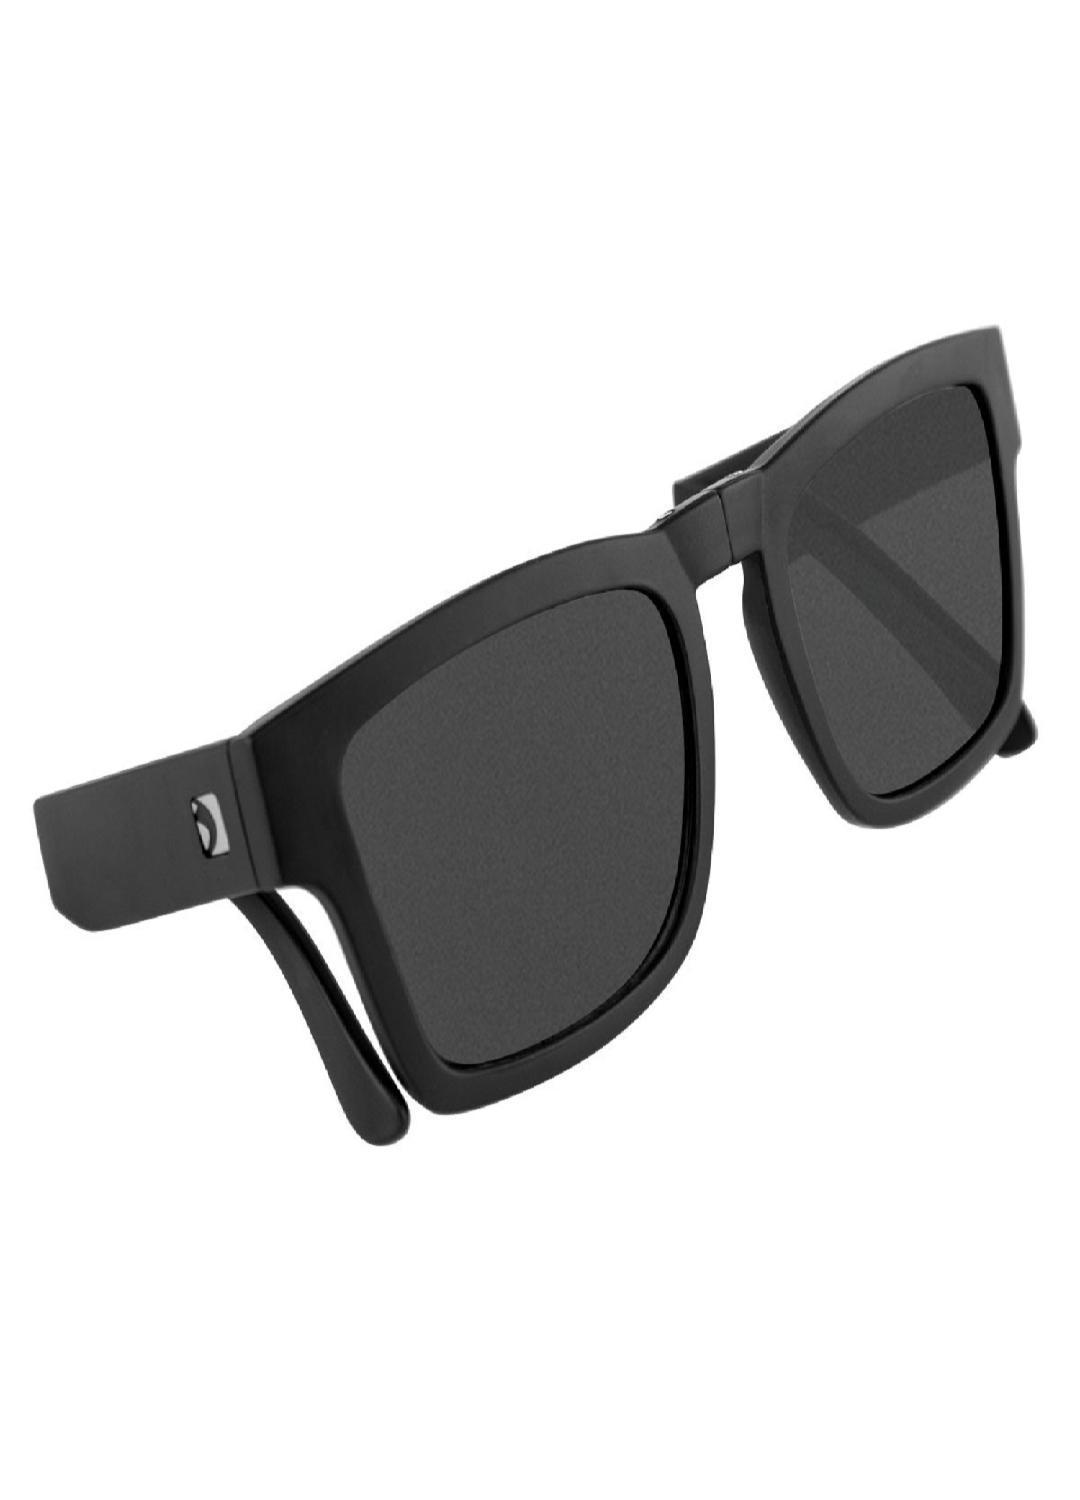 Bobster Brix Folding Sunglasses Matte Blk Frame-Smoked Lens